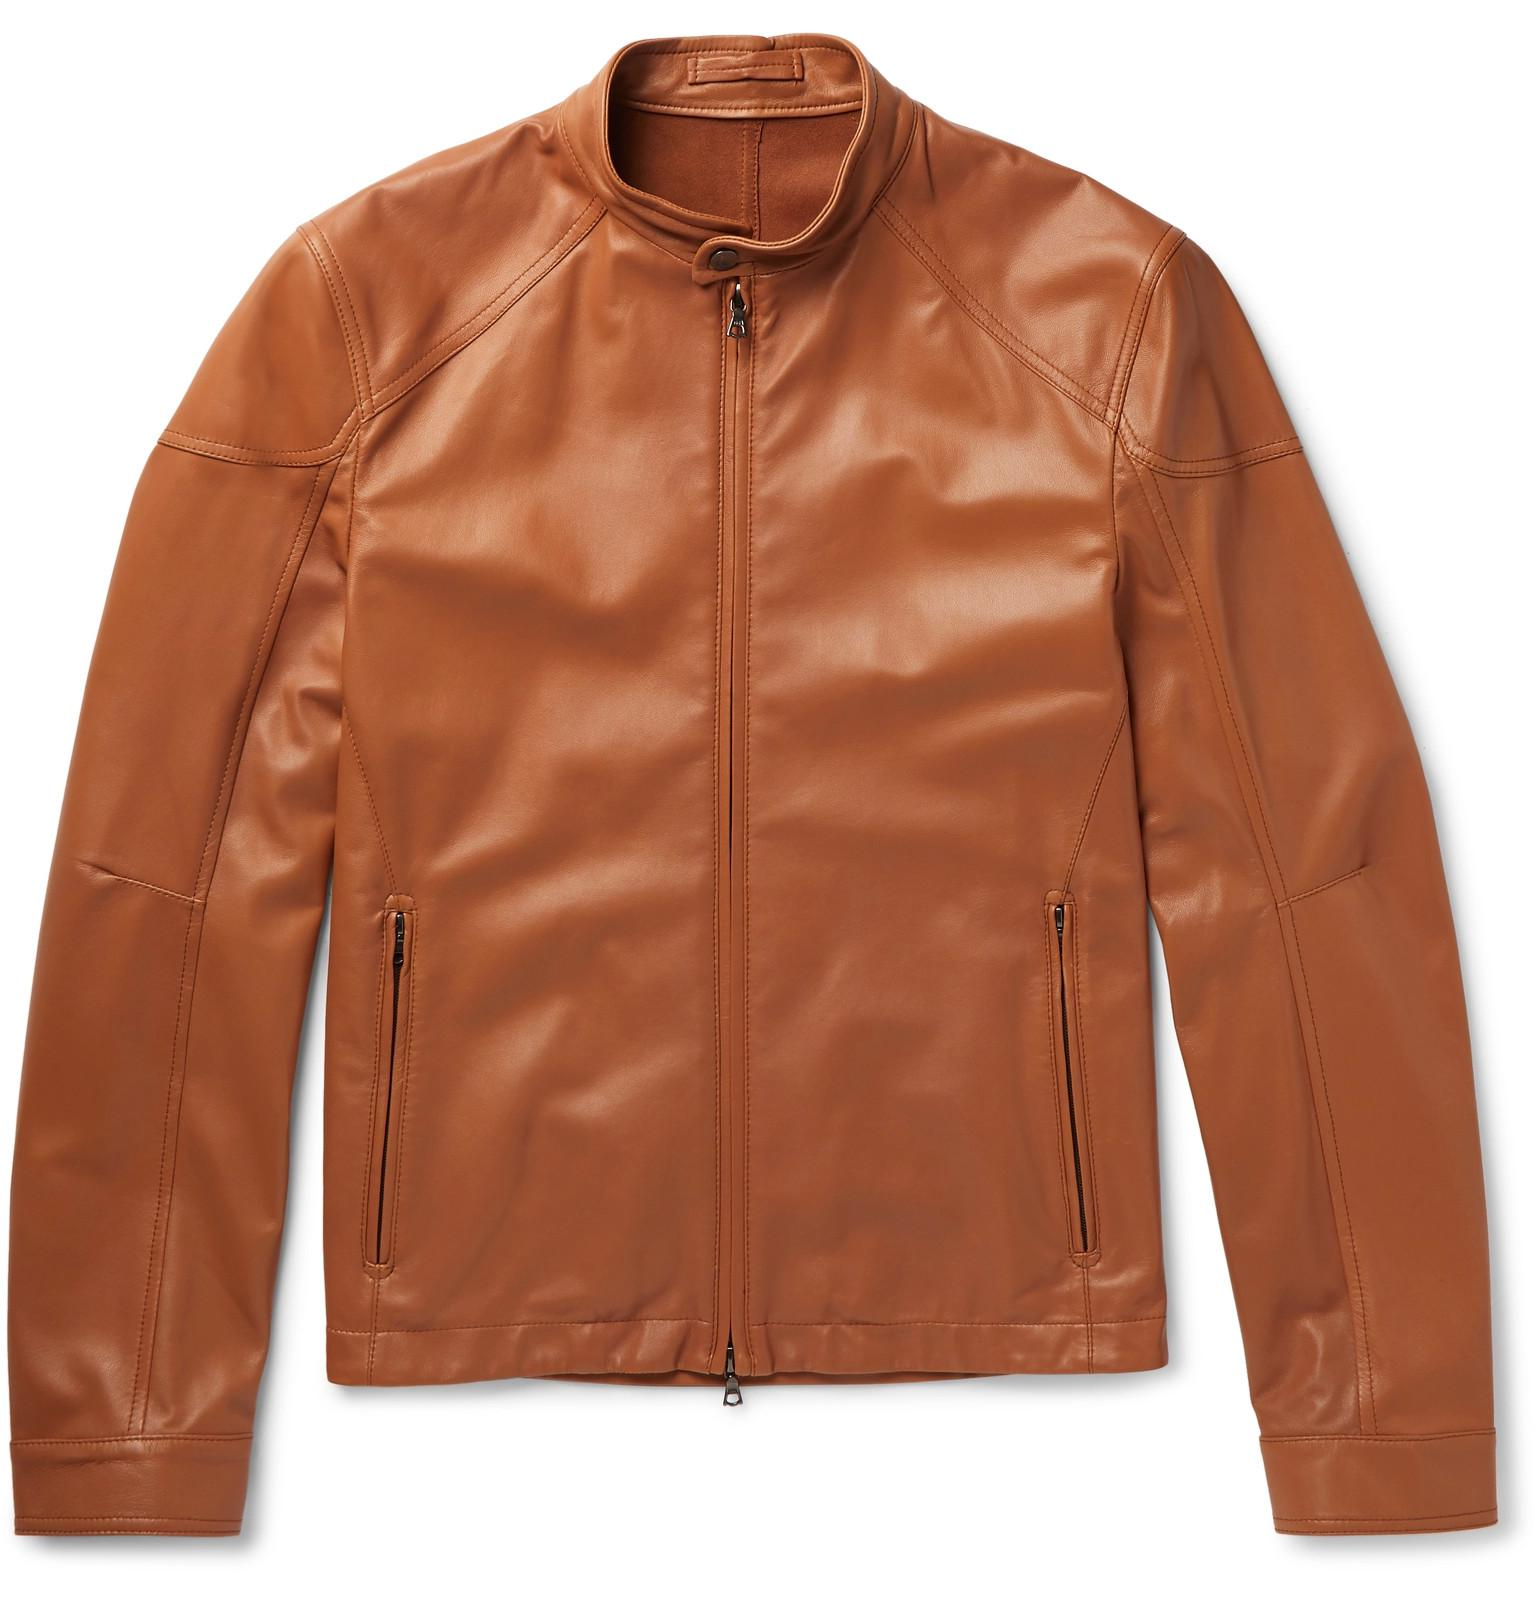 073b5fe6073 CONNOLLY Slim-fit Leather Racing Jacket in Brown for Men - Lyst